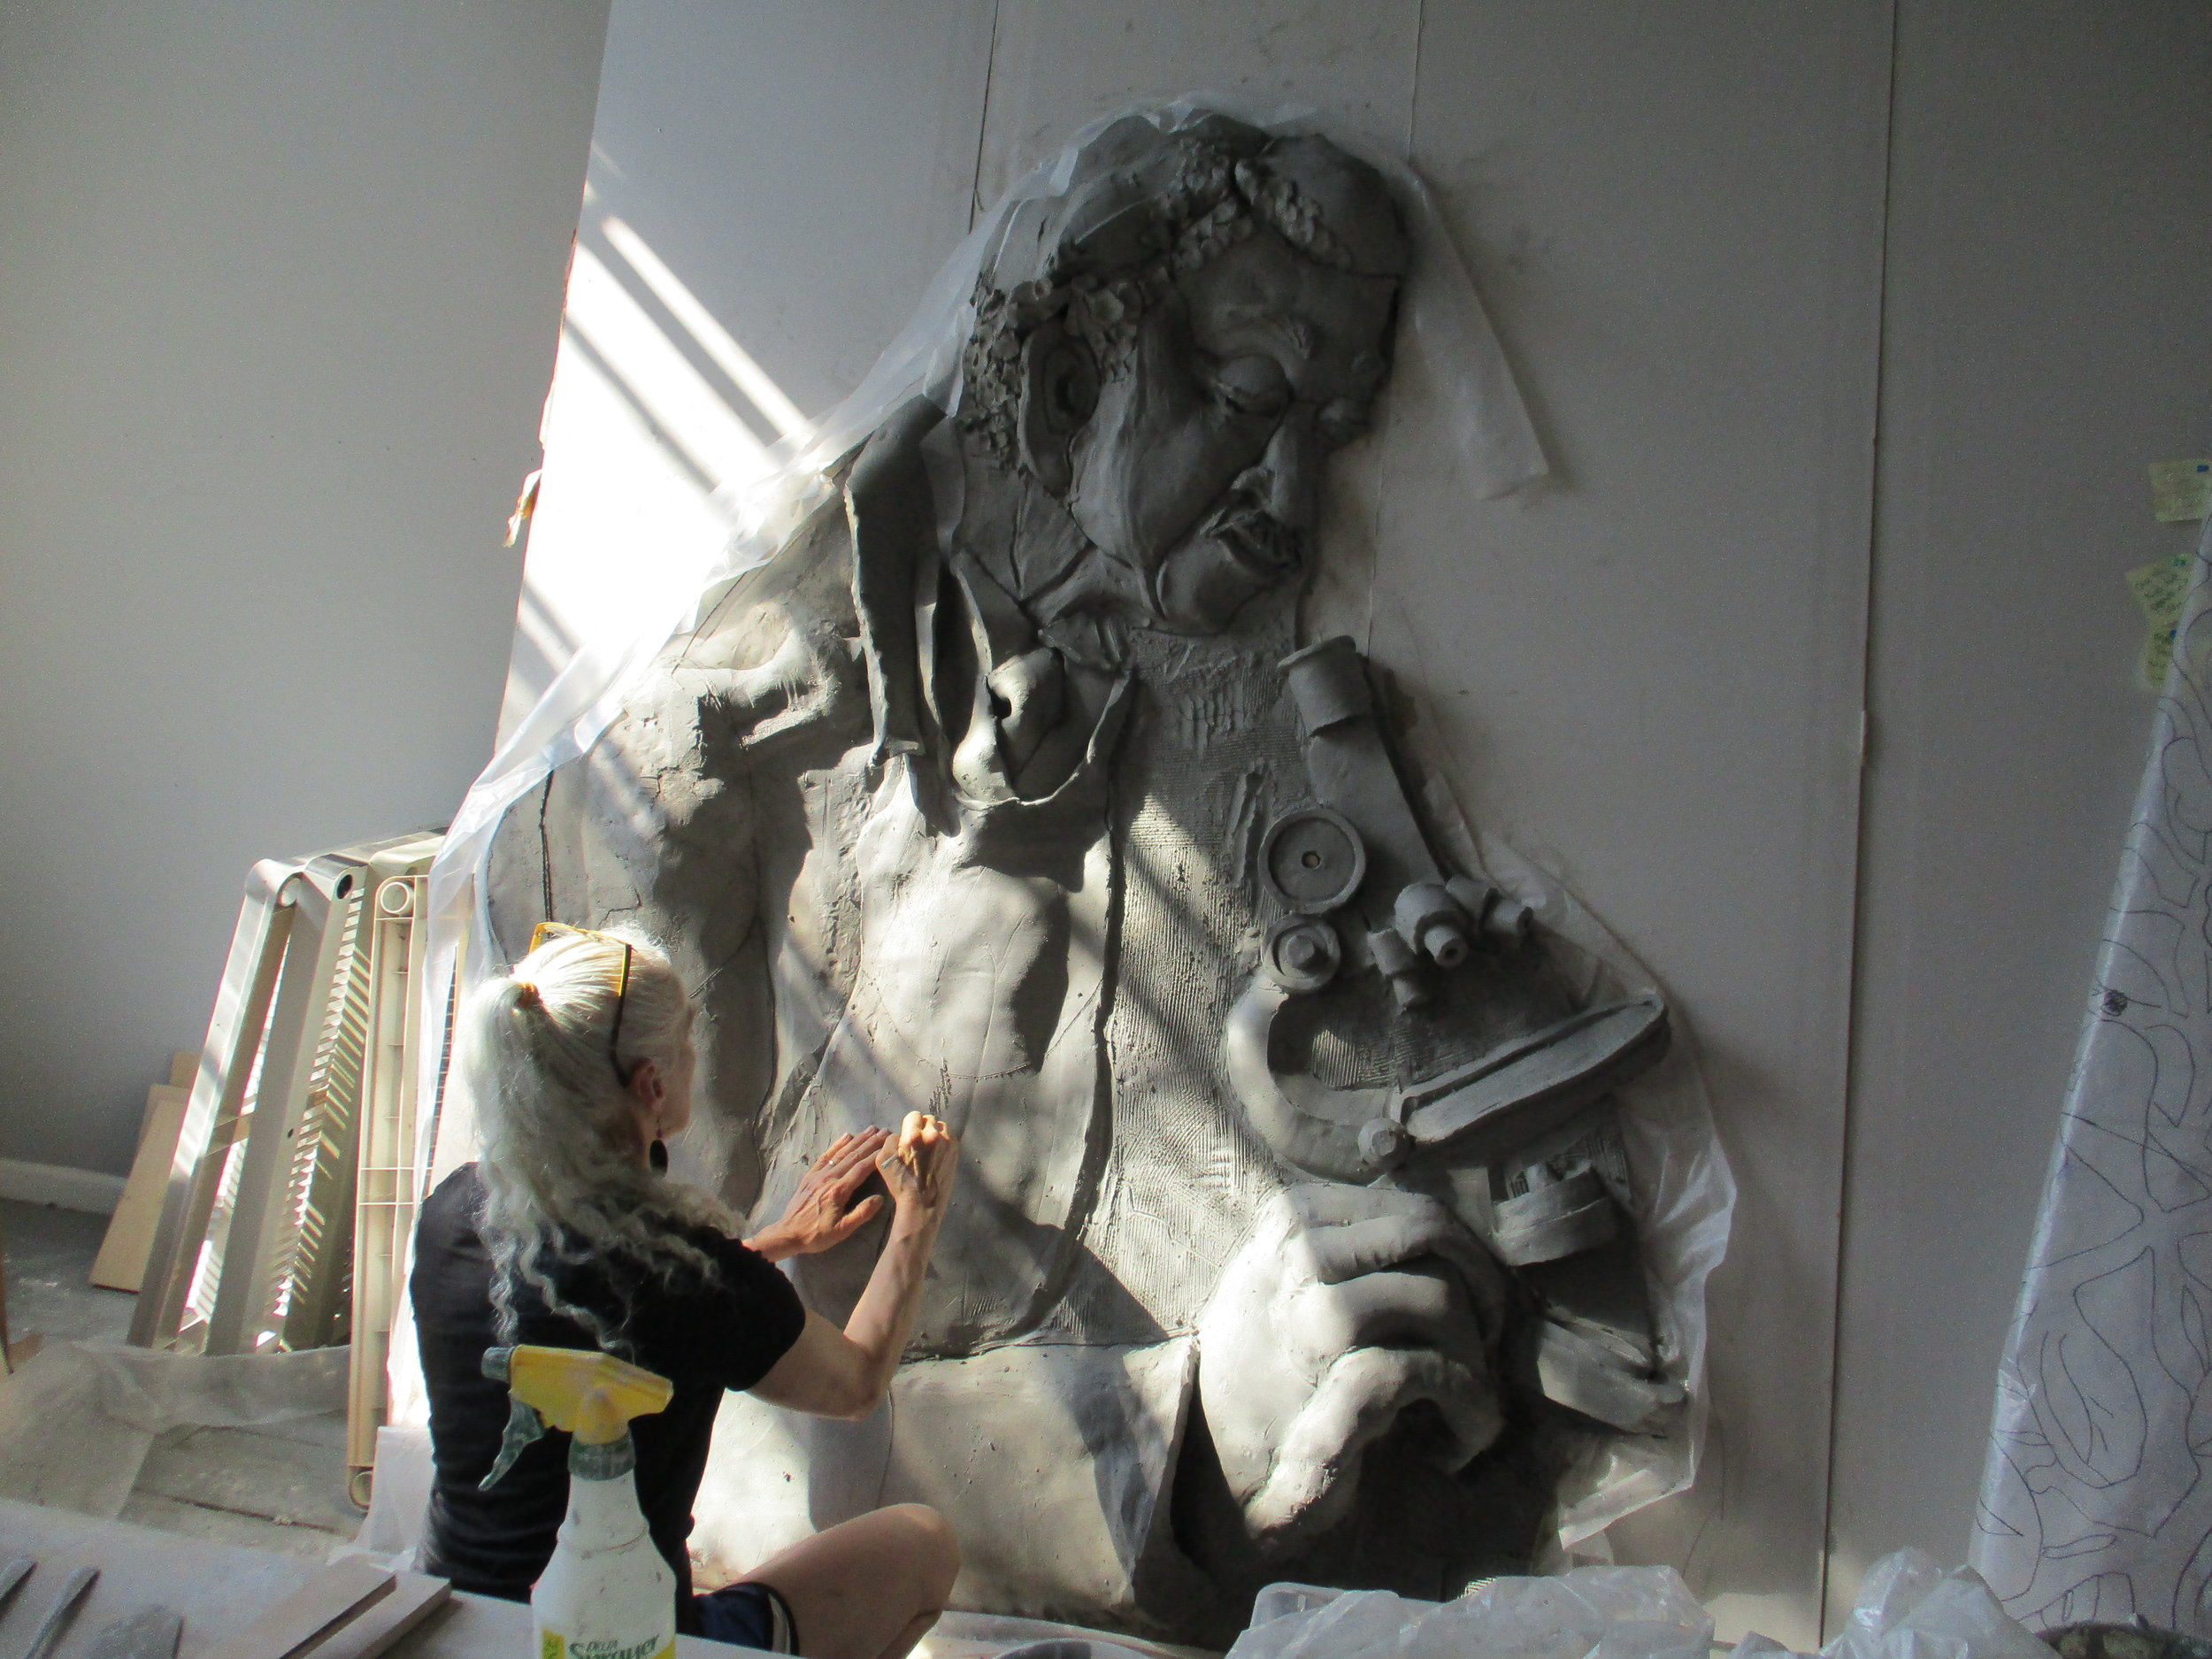 Artist Sarah Cobble sculpting the nearly 7 foot figure of George Washington Carver